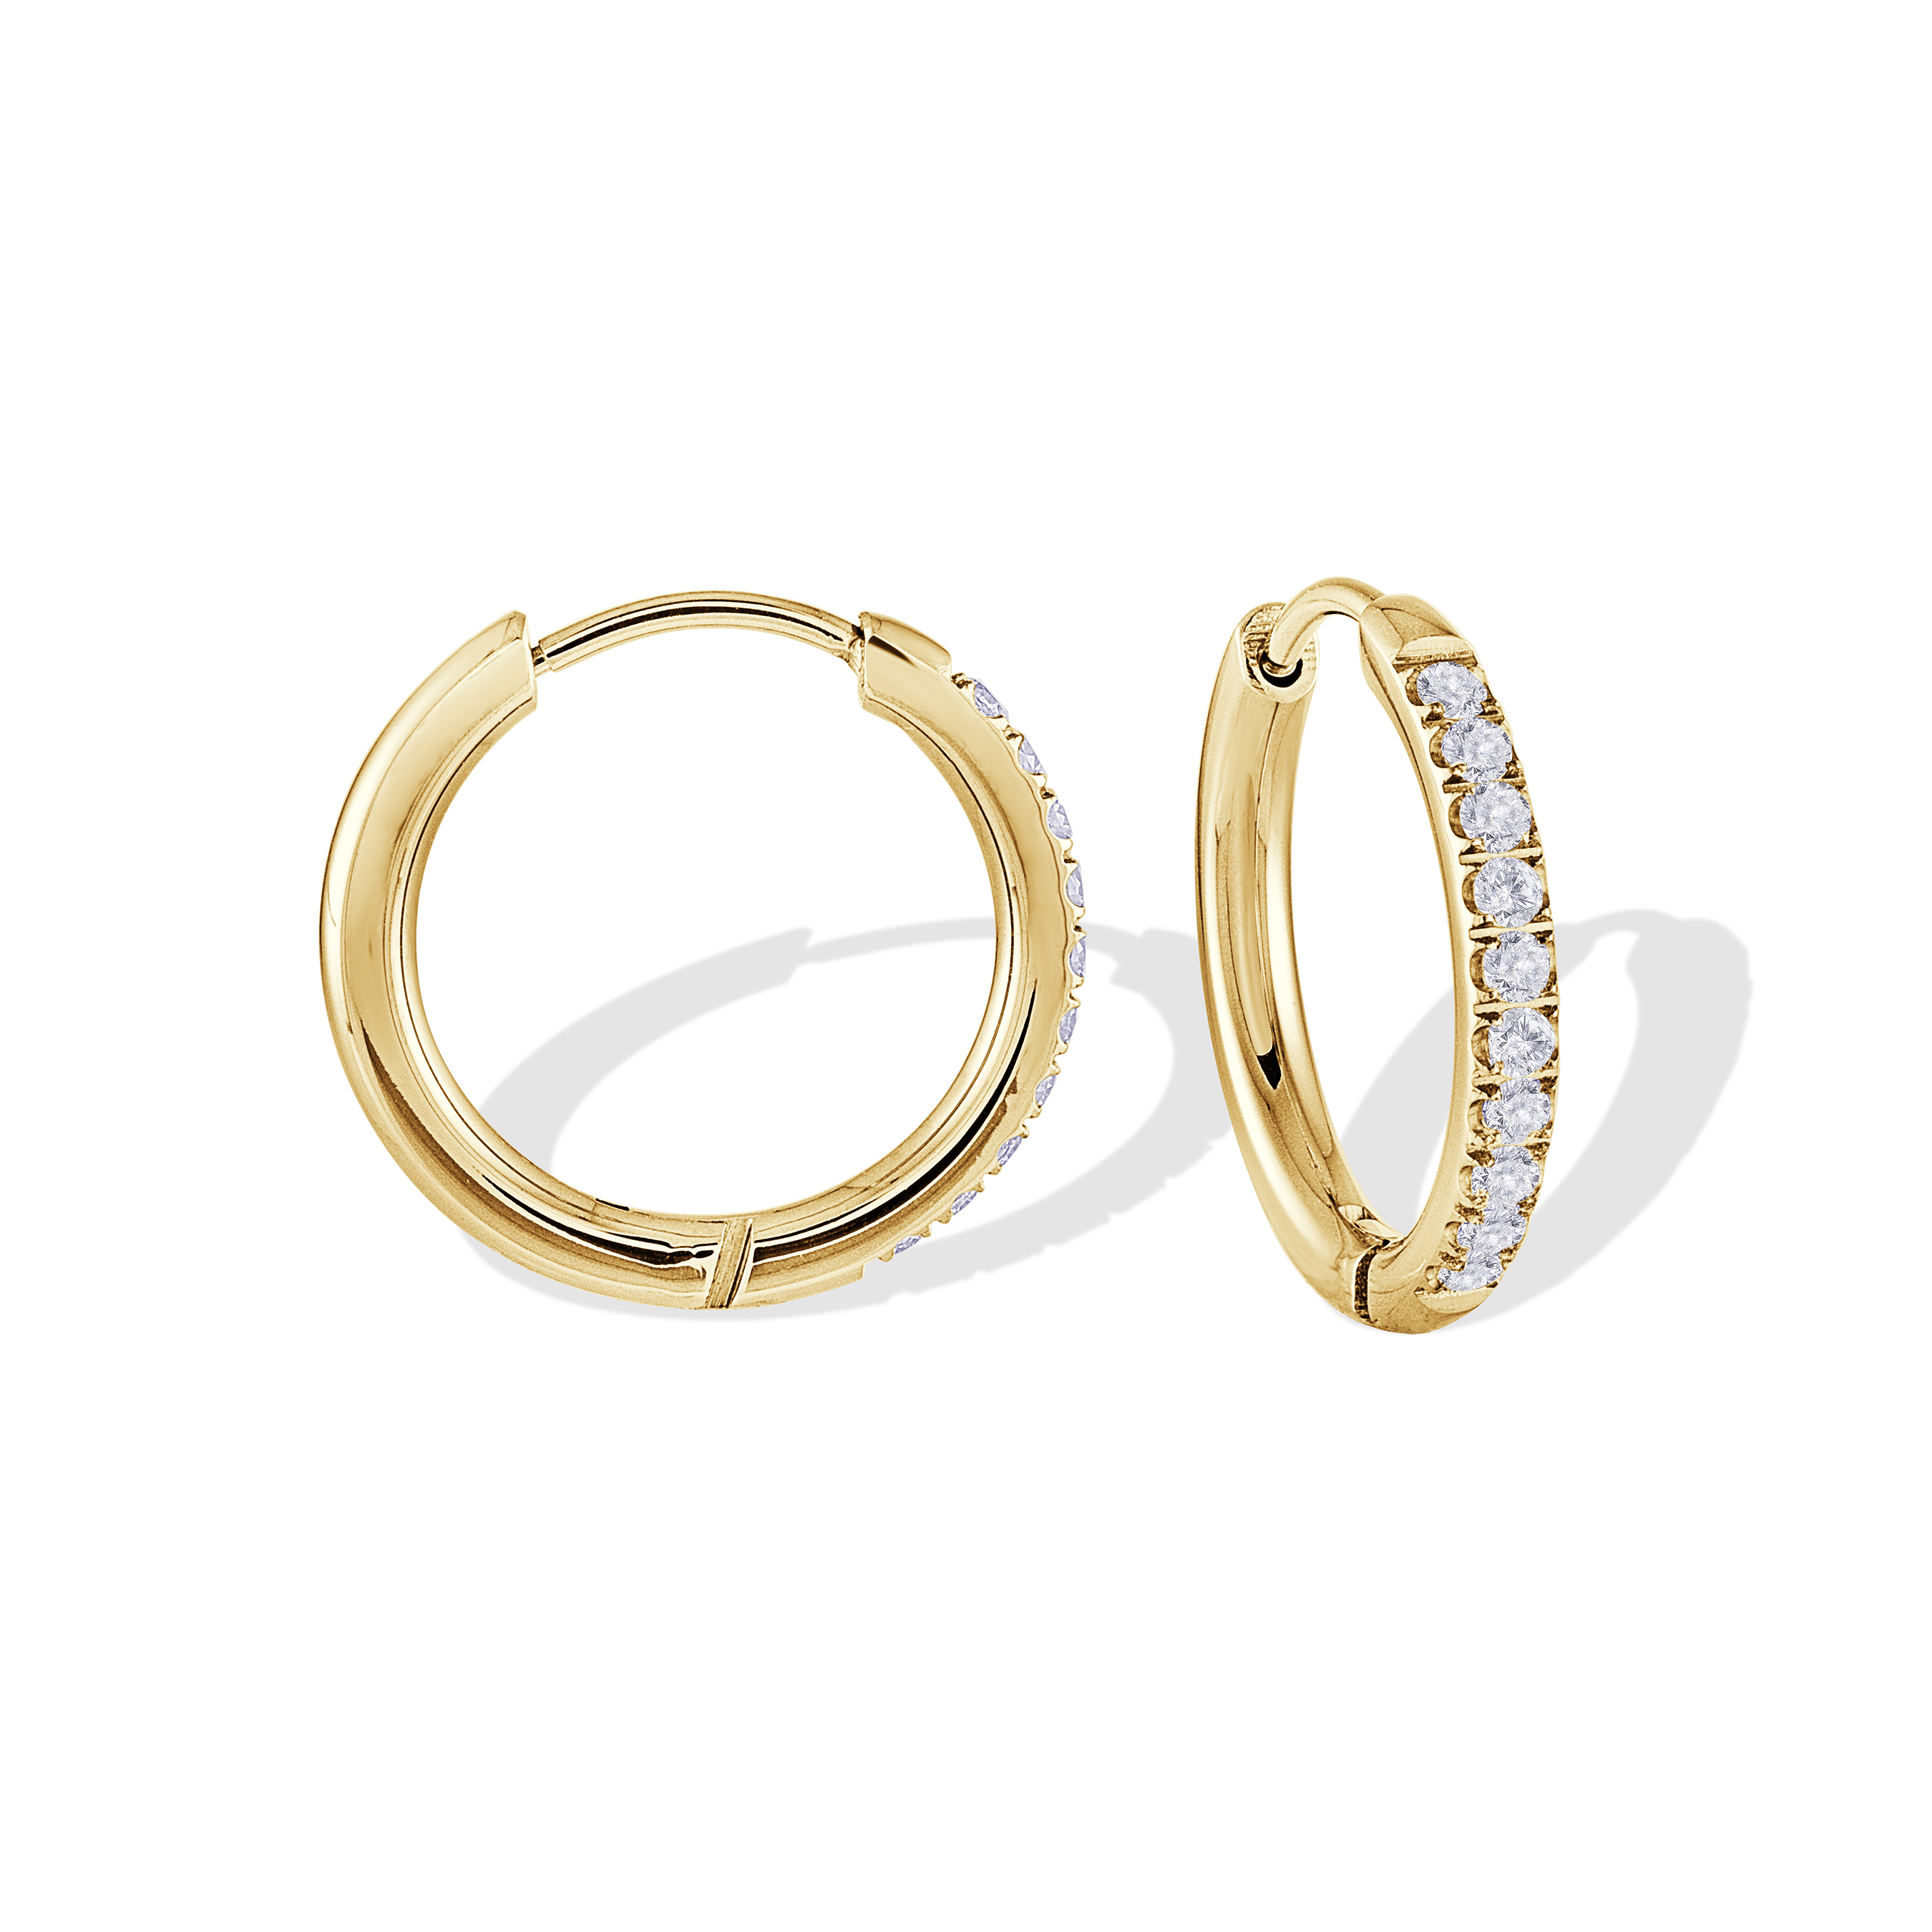 Hoop earrings - Yellow stainless steel & Cubic zirconia